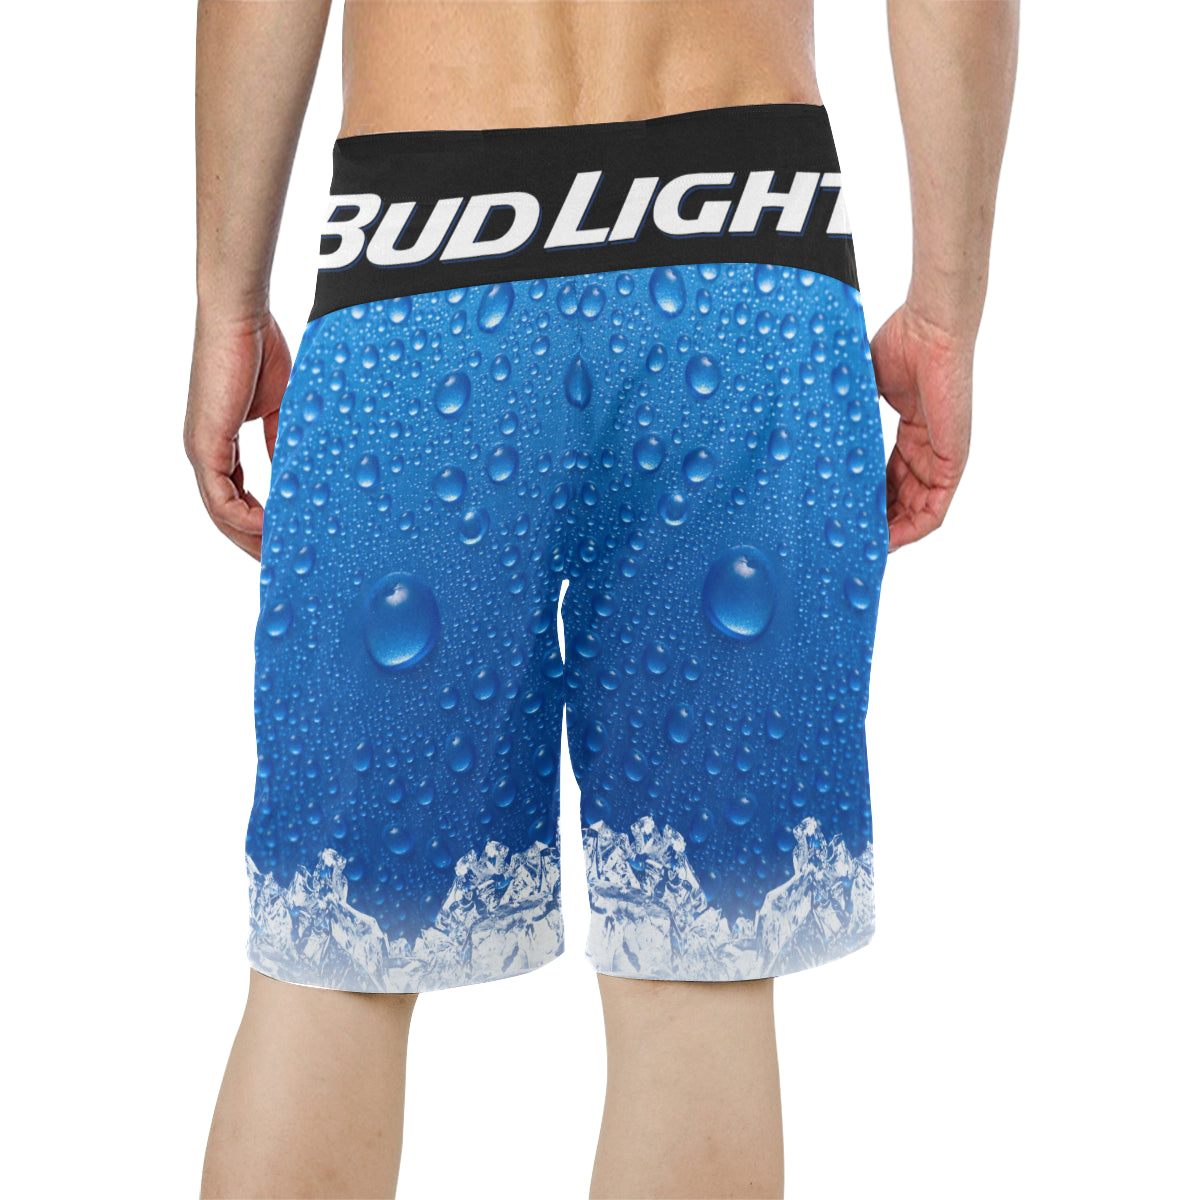 1966fac1b5 Bud Light - Limited Edition - Shorts (SALE OFF)